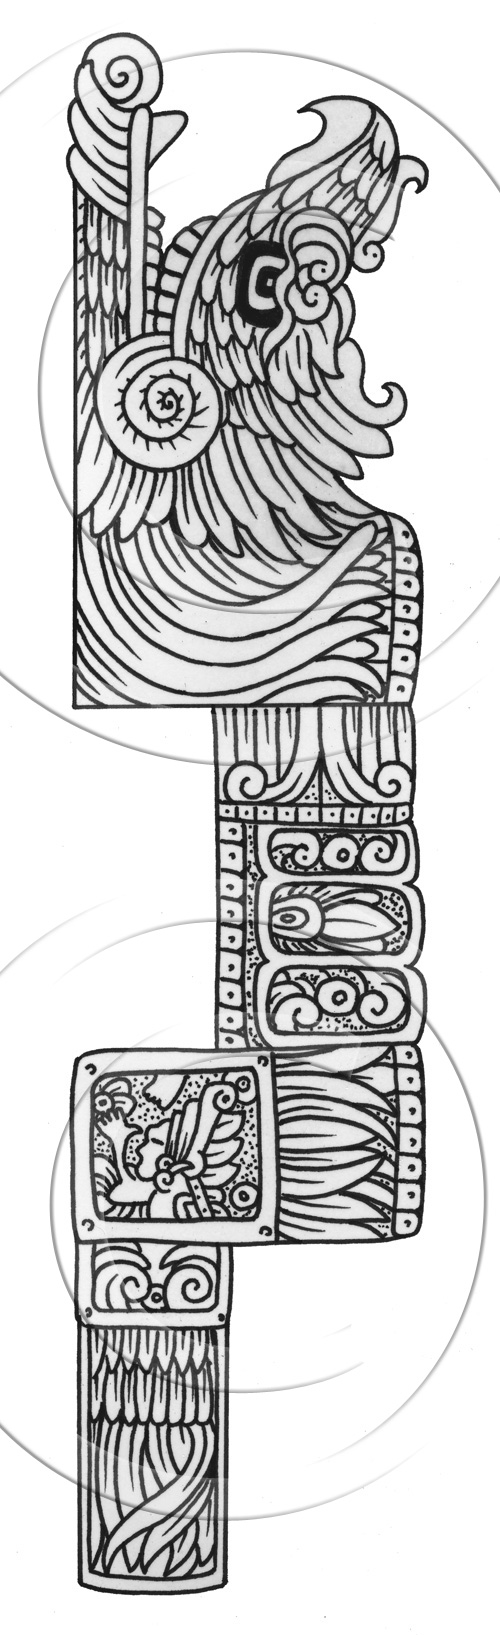 aztec pictures to colour aztec art coloring pages at getdrawings free download pictures to aztec colour